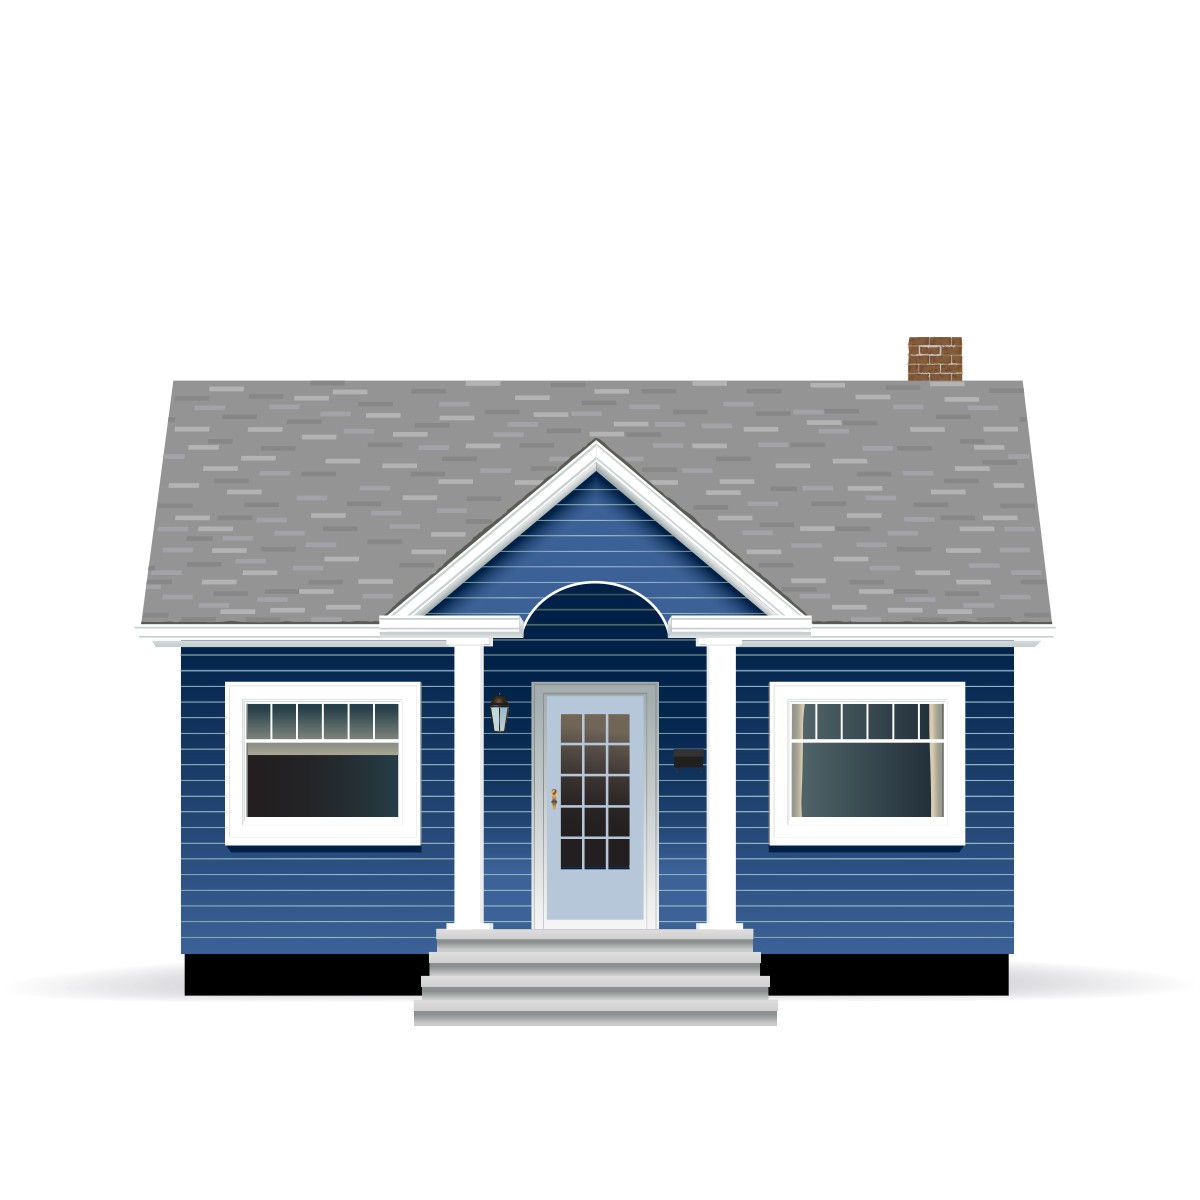 Dark blue bungalow house with grey roof and white trim illustration